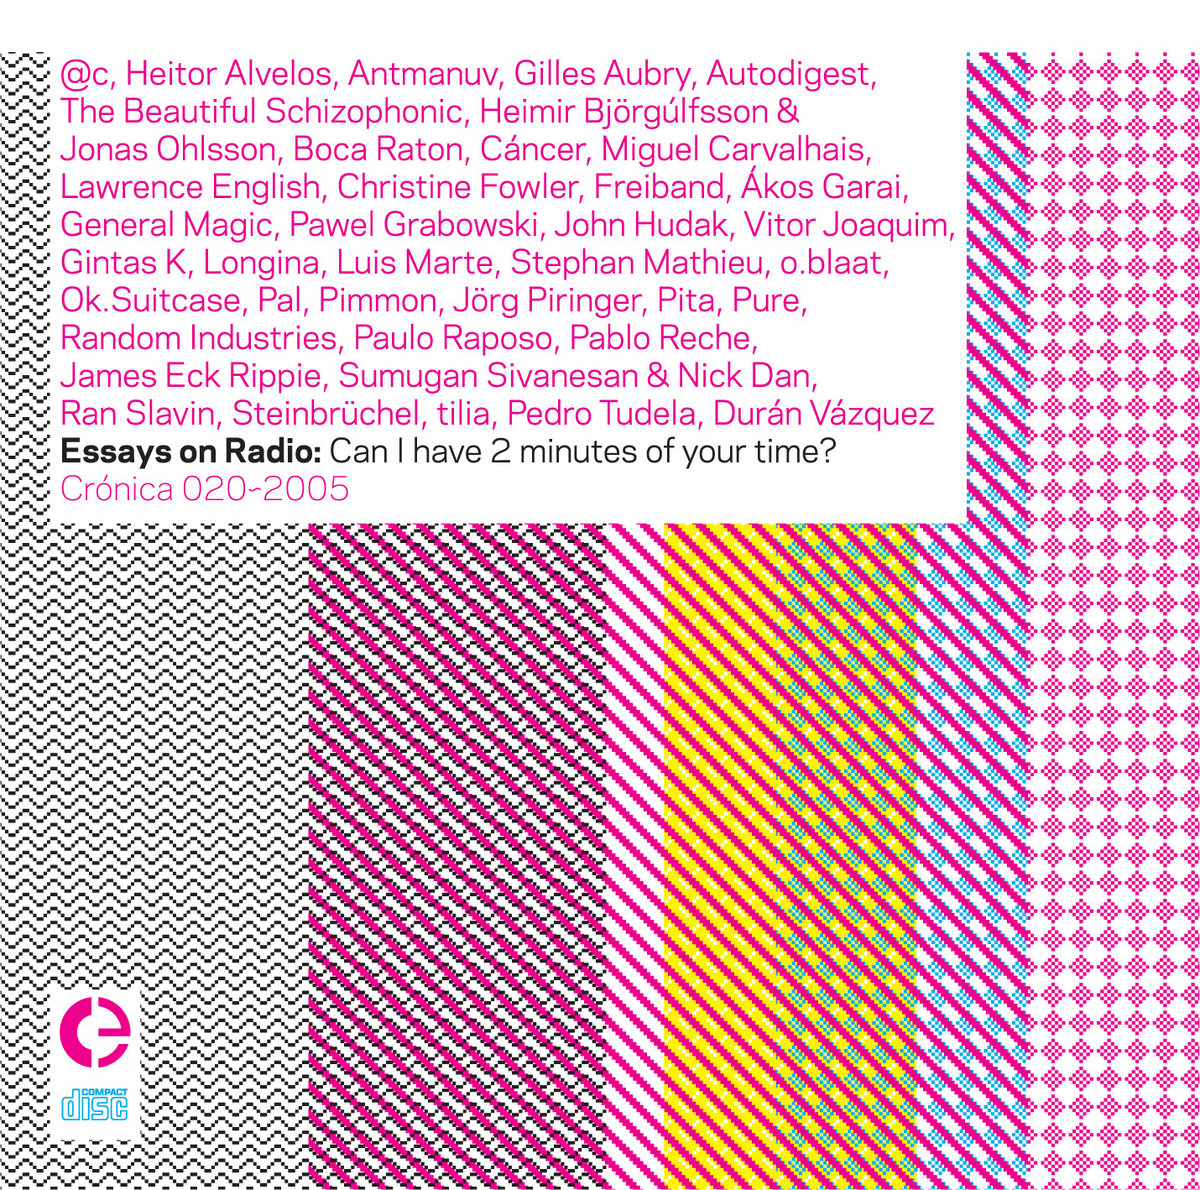 essays on radio can i have minutes of your time cr oacute nica by various artists